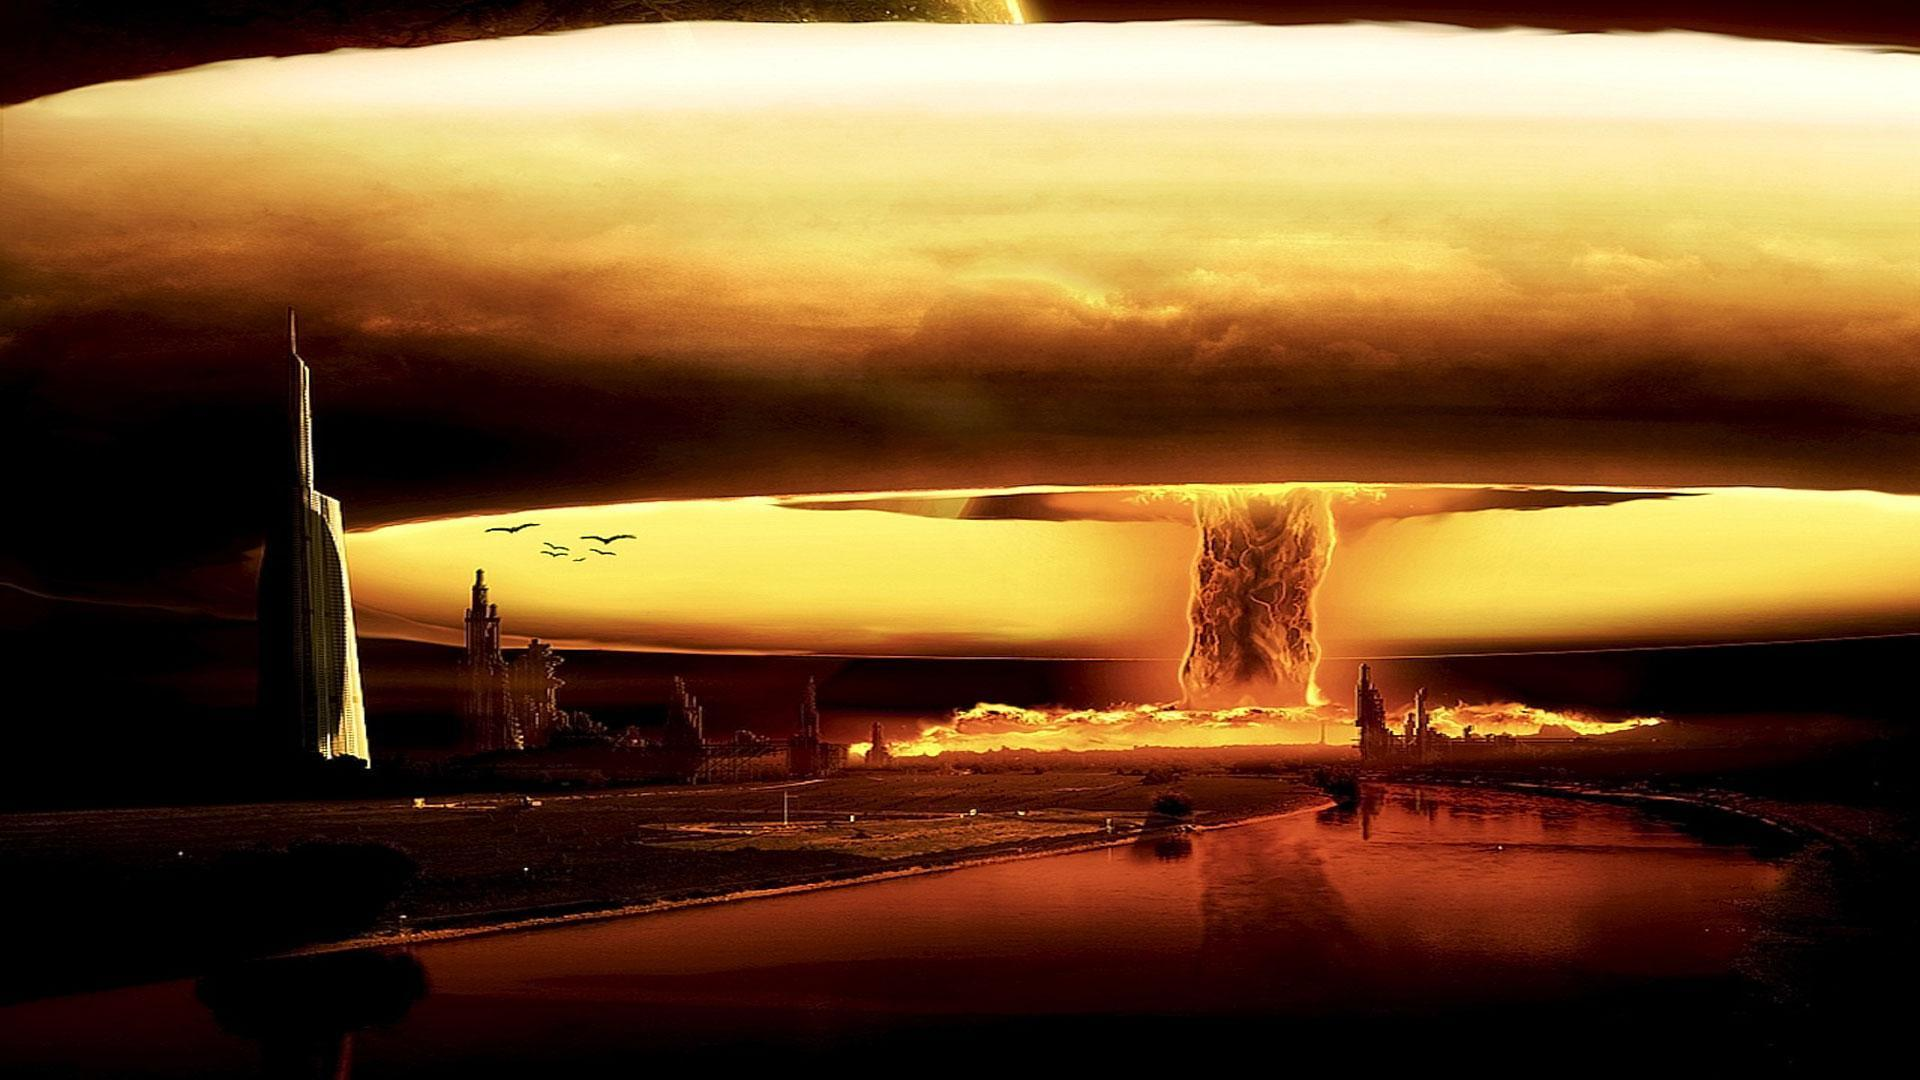 Nuke Explosion Wallpapers - Wallpaper Cave Real Nuclear Explosions Wallpaper